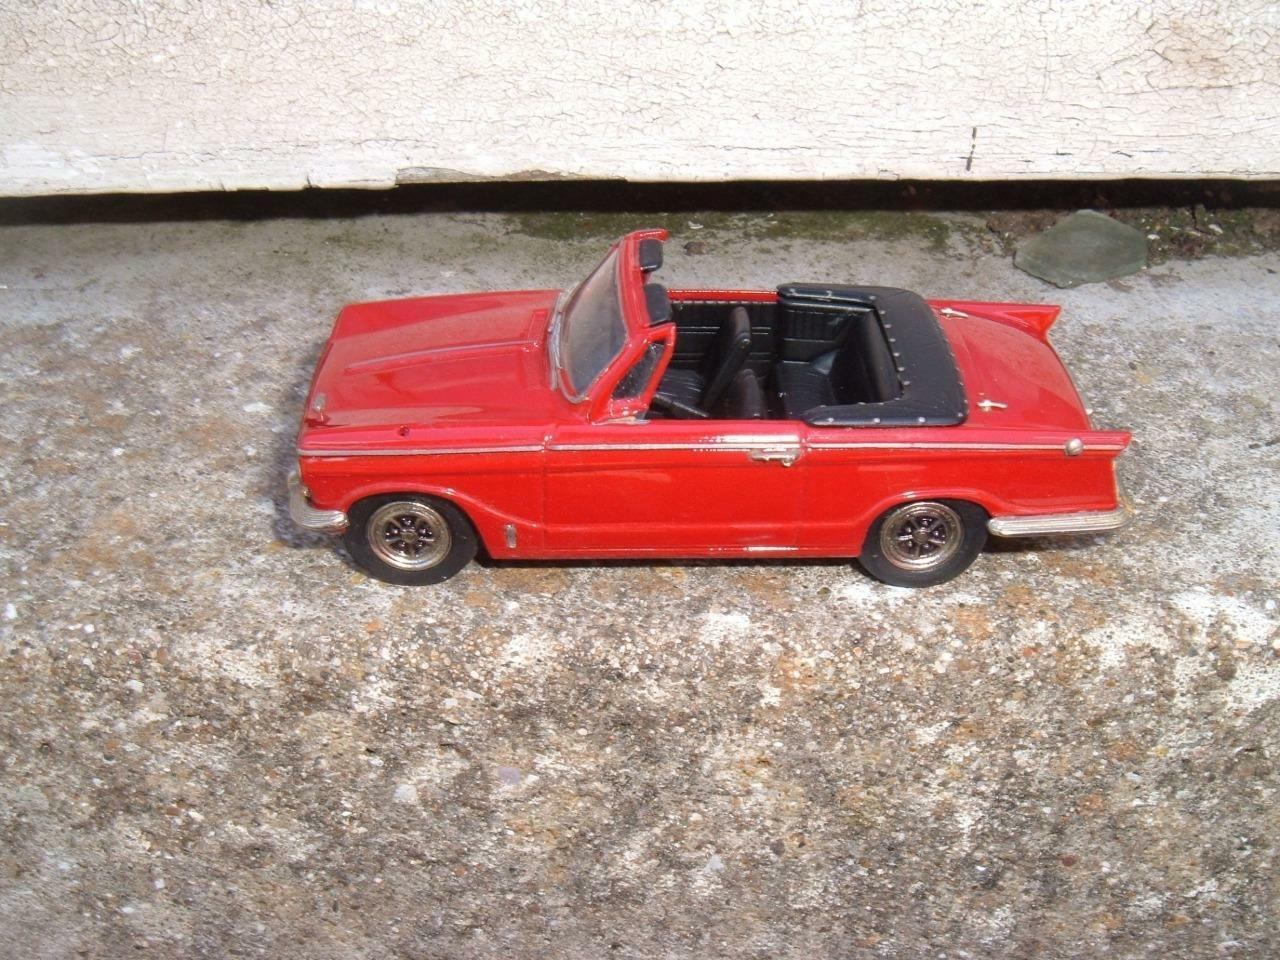 KENNA MODELS TRIUMPH VITESSE CONVERTIBLE TOP DOWN  UNBOXED 1 43 NO WING MIRRORS  sortie